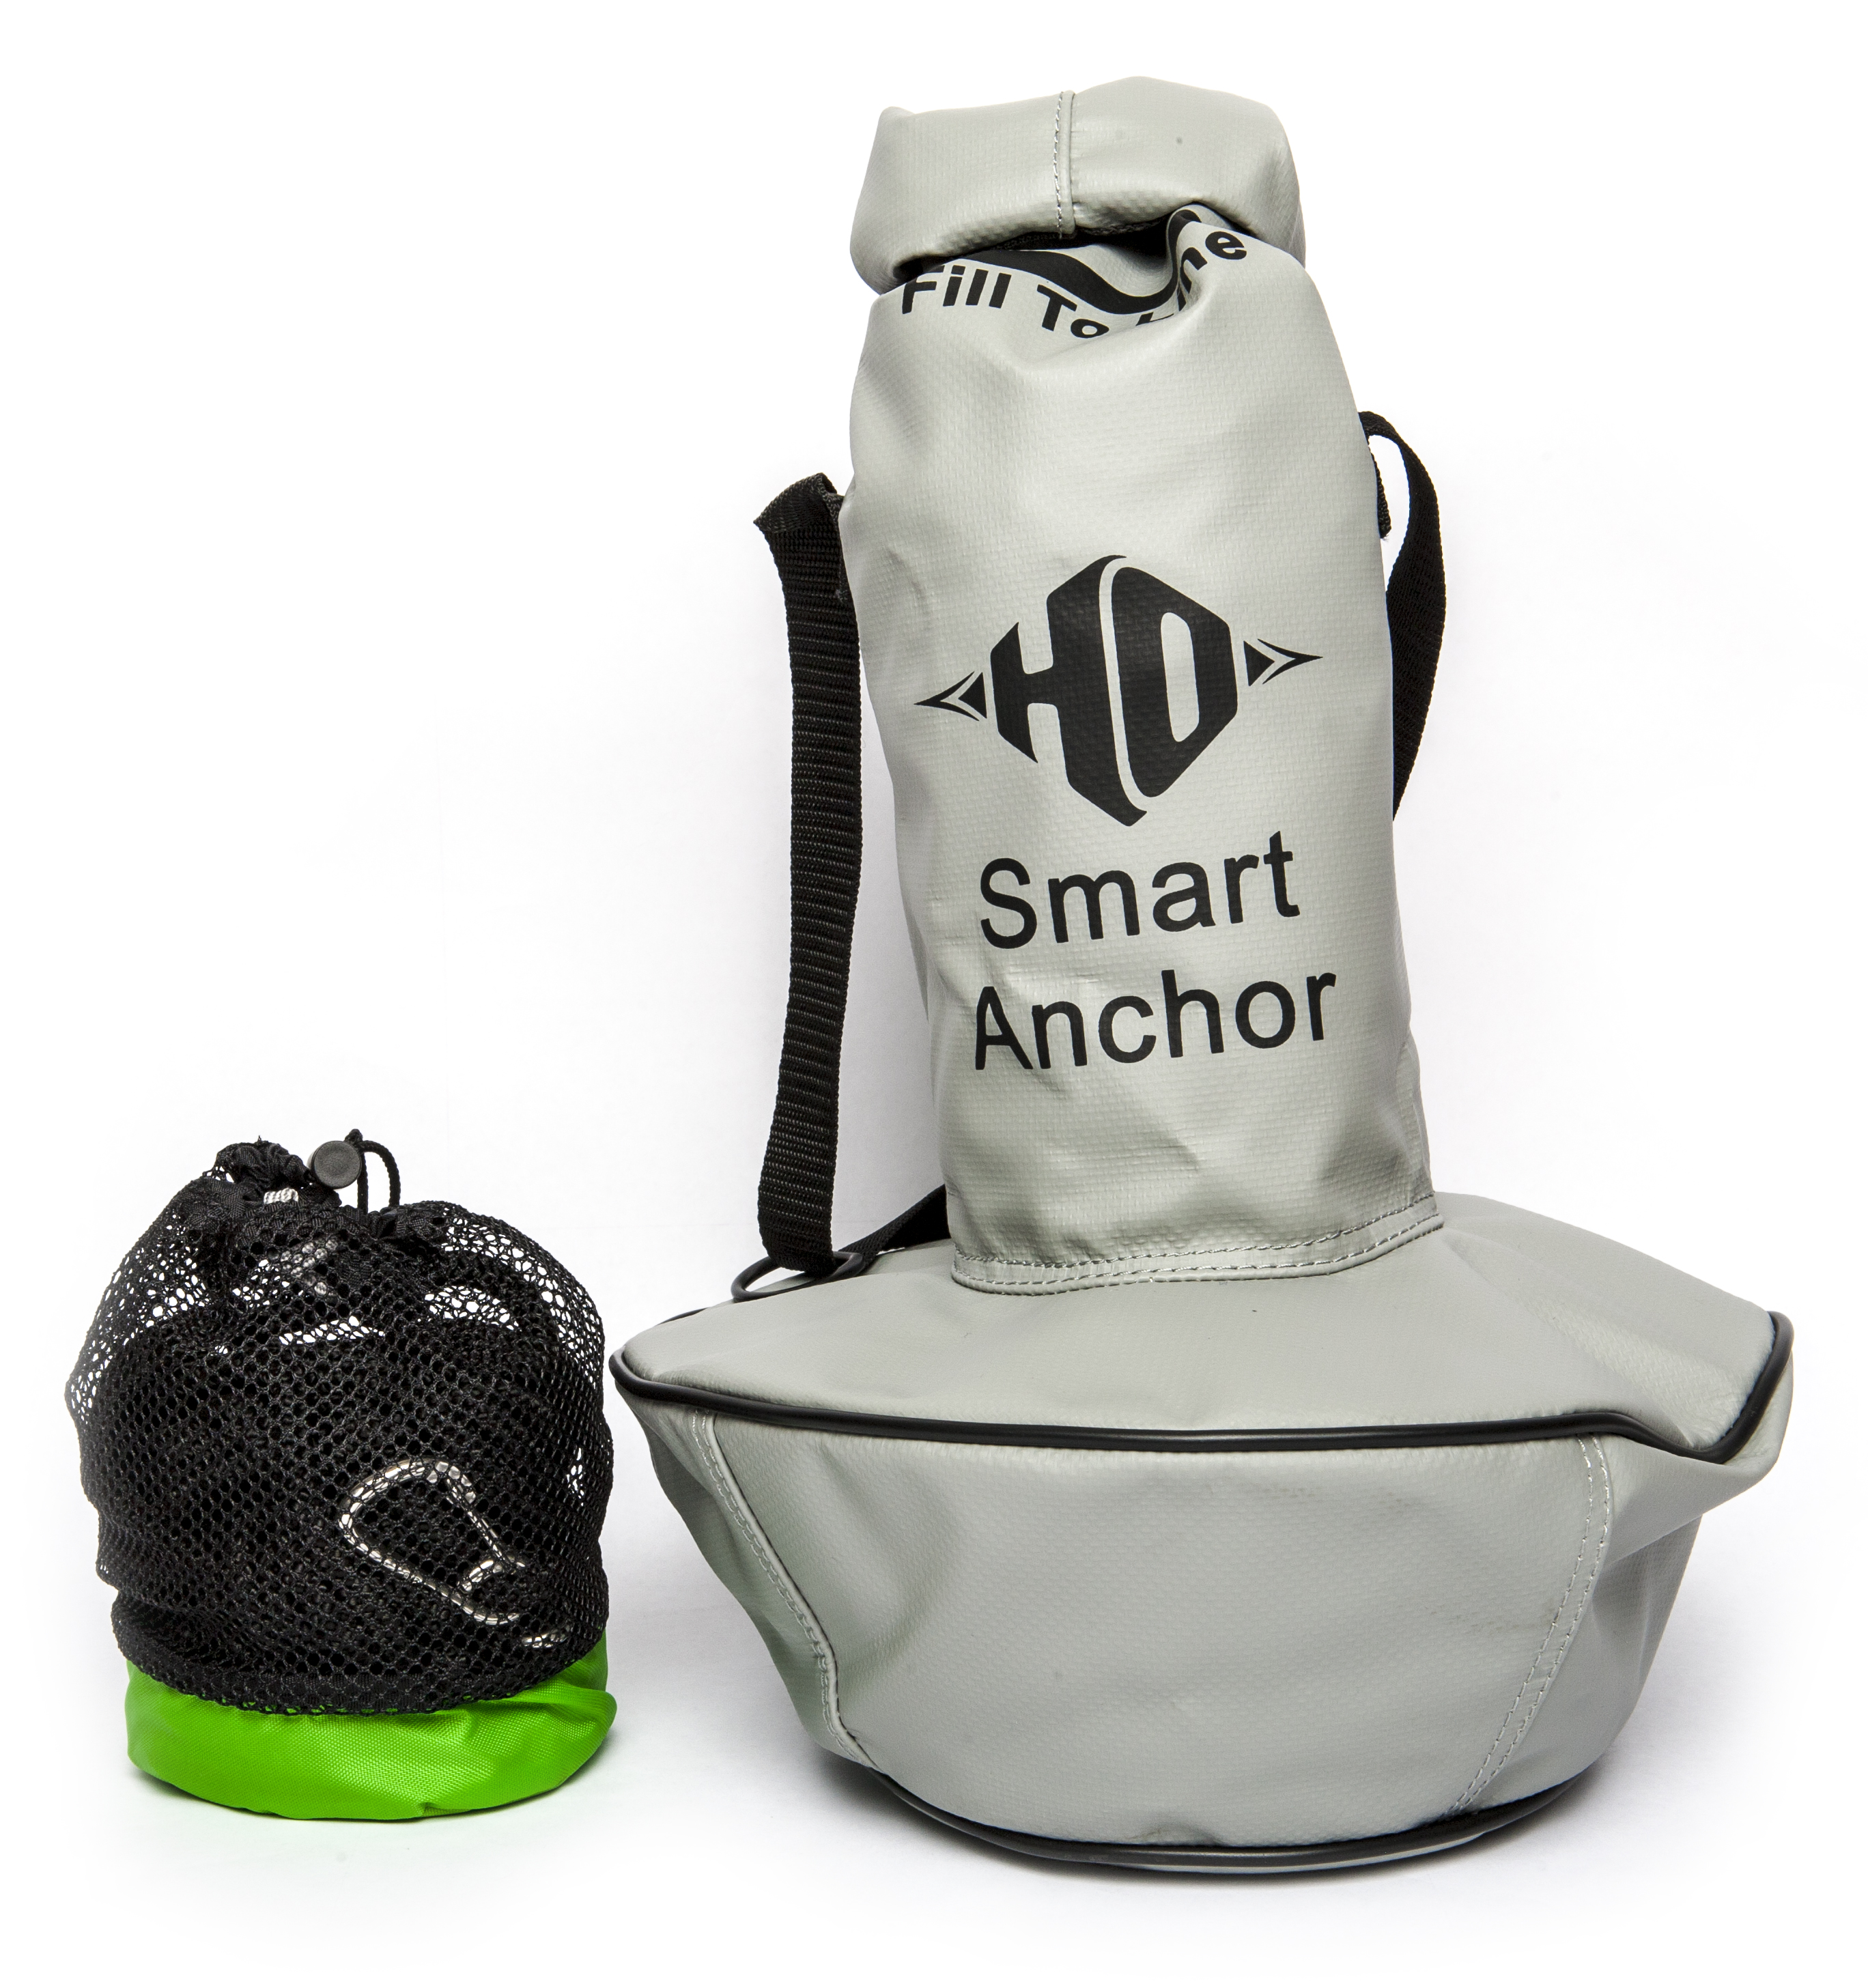 SMART ANCHOR/30 FT LINE/ROPE BAG HO SPORTS 2019